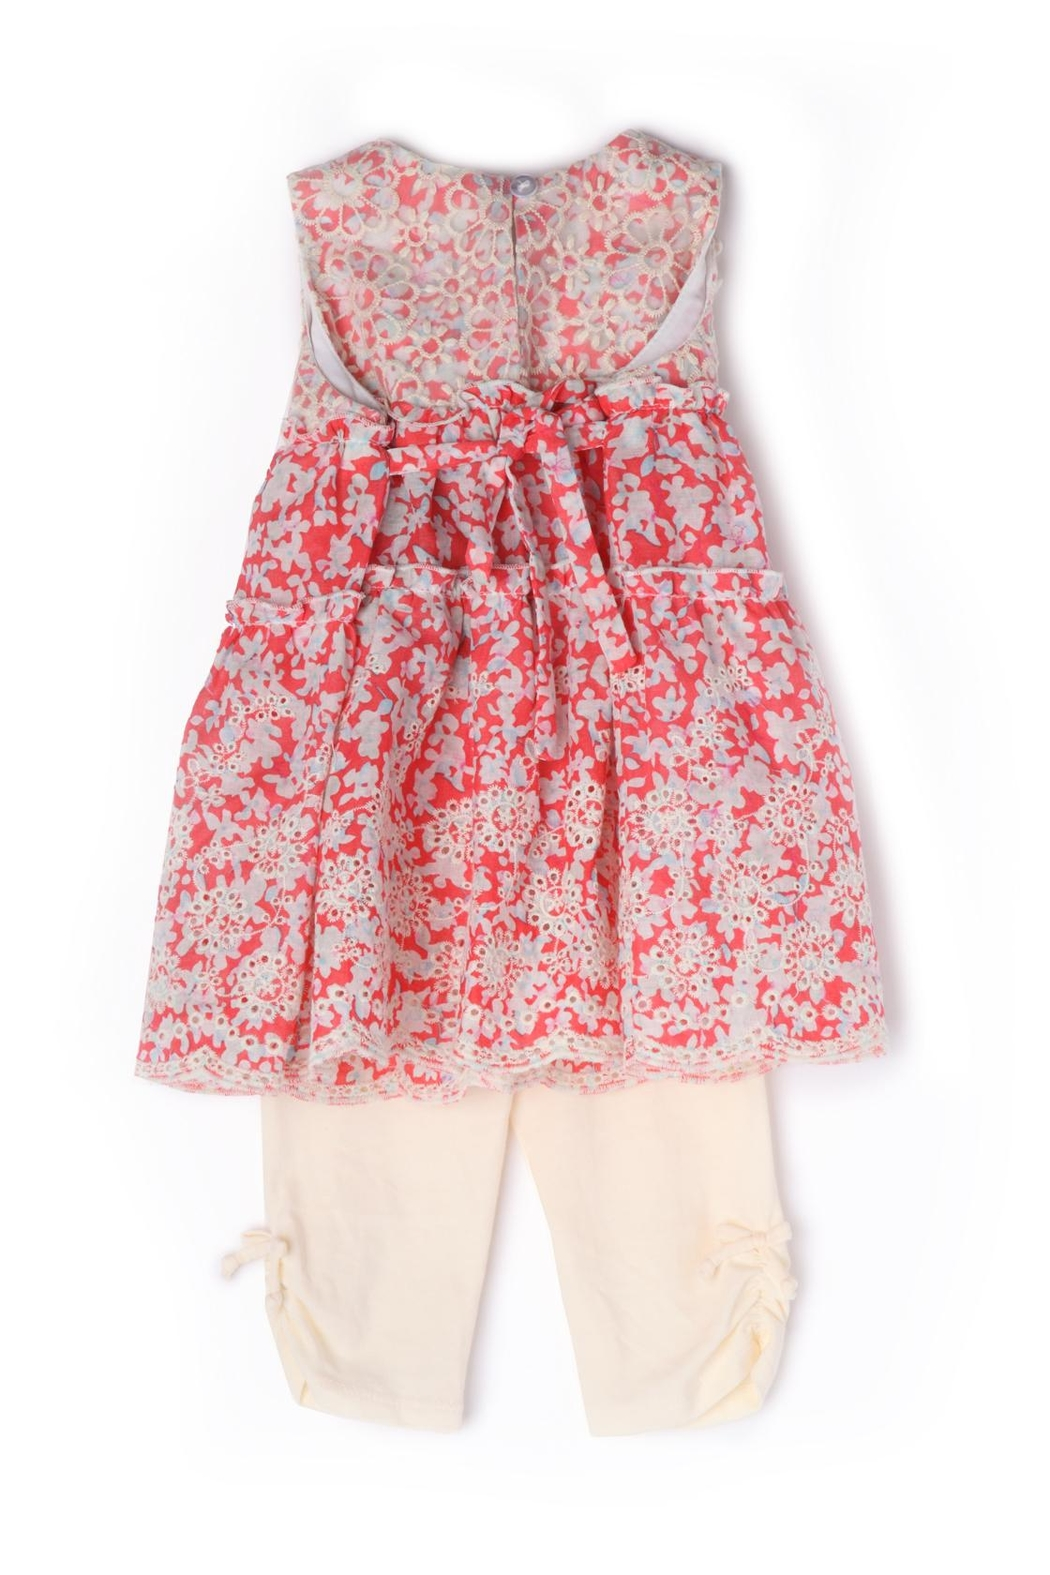 Isobella and Chloe Poppy Fields 2-Pc-Set - Front Full Image